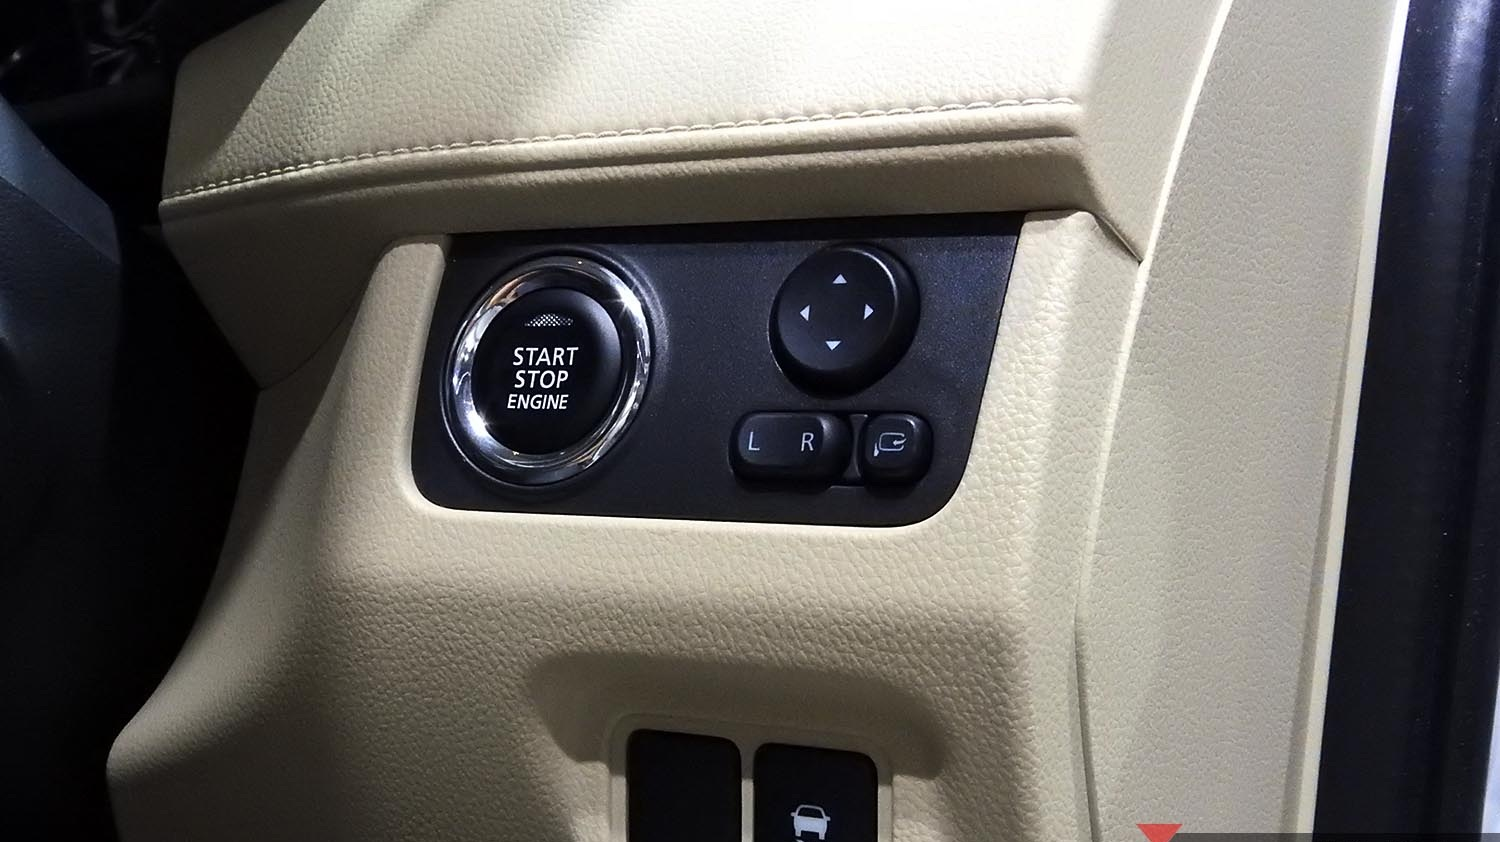 small resolution of apart from the mentioned smart entry mitsubishi xpander also has a start stop engine button where only xpander has it compared to rivals